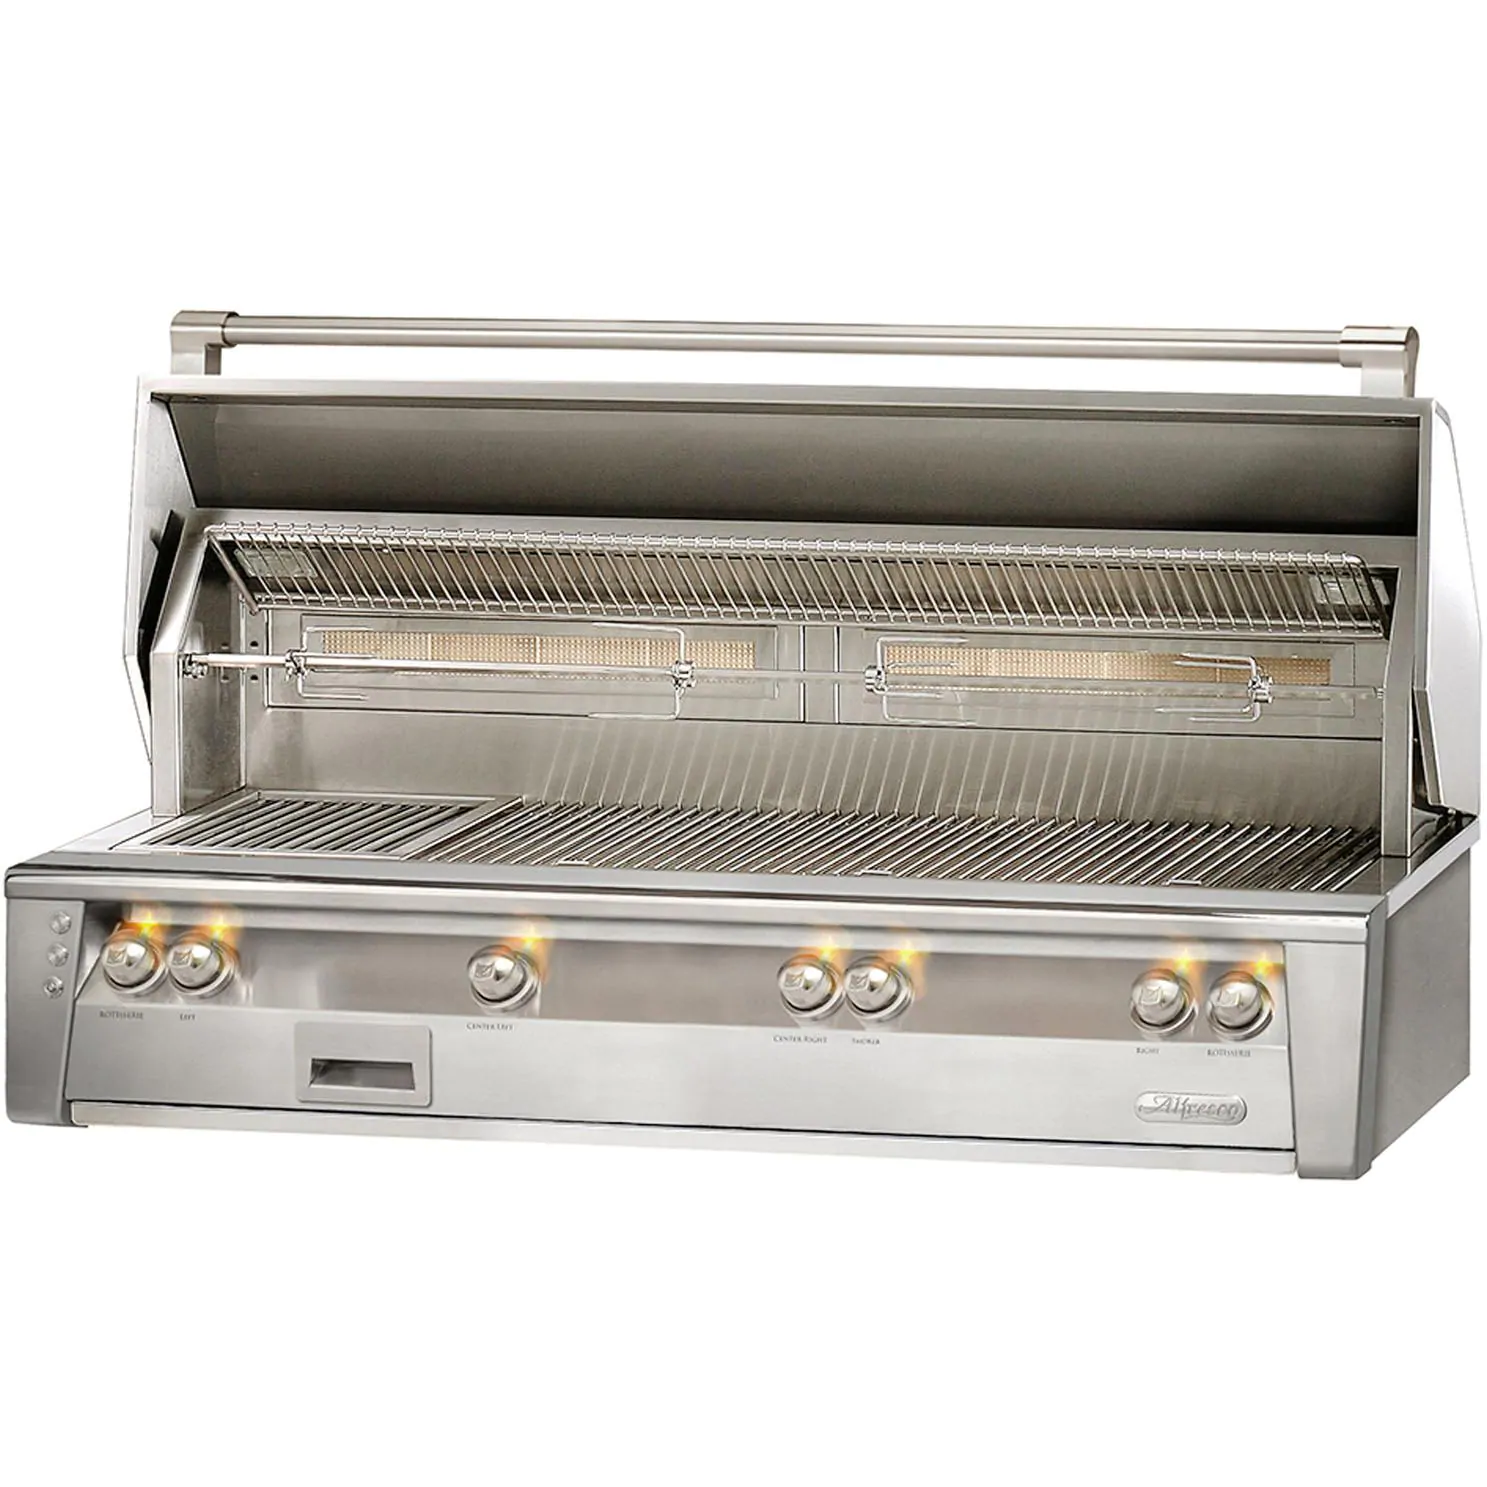 """Alfresco ALXE 56"""" Built-In Natural Gas All Grill With Sear Zone And Rotisserie - ALXE-56BFG-NG"""